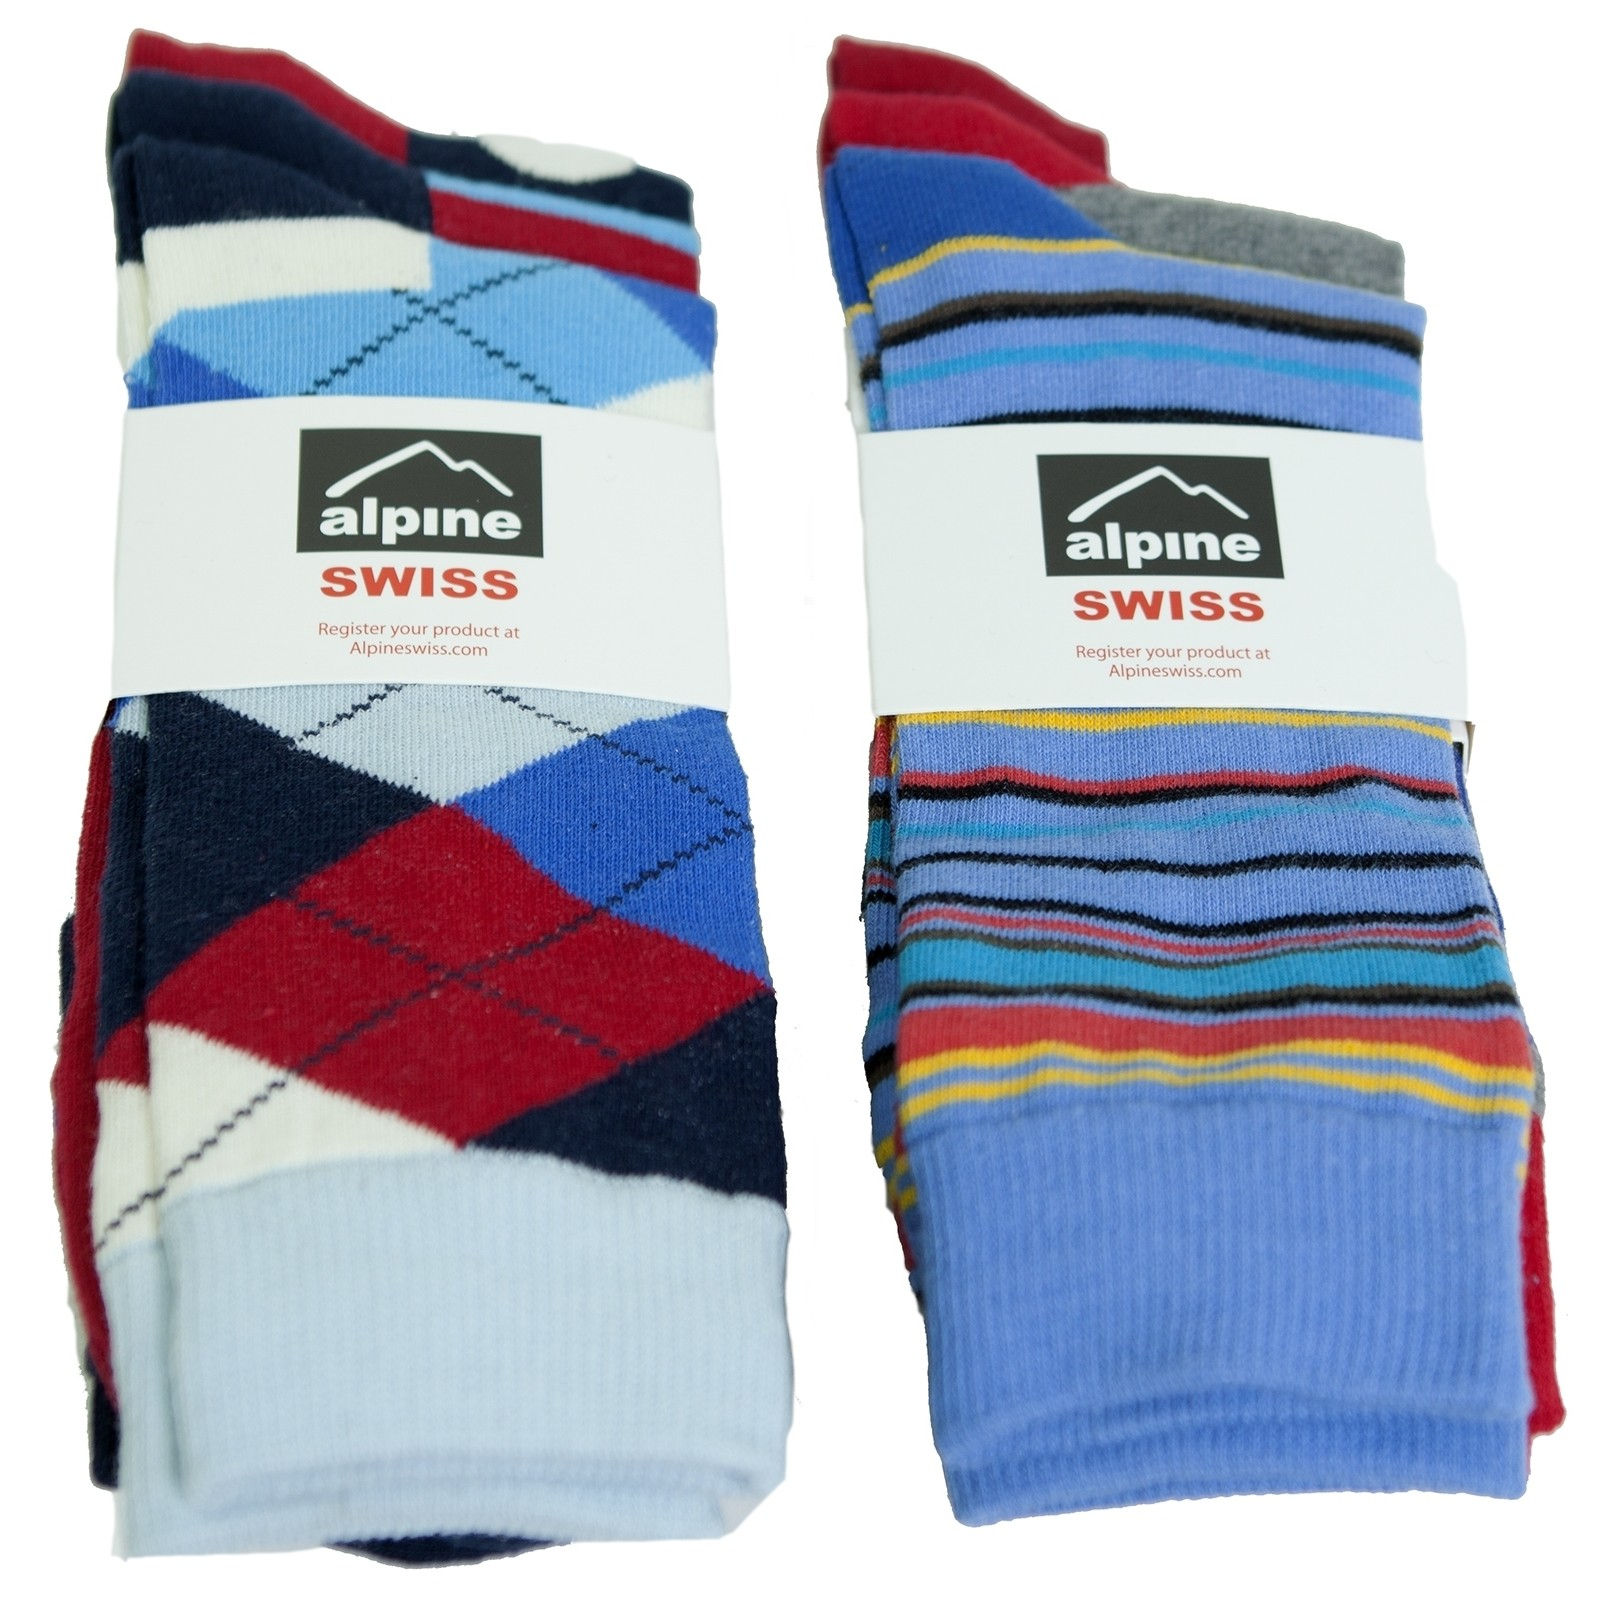 Alpine-Swiss-6-Pack-Mens-Cotton-Dress-Socks-Mid-Calf-Argyle-Pattern-Solids-Set